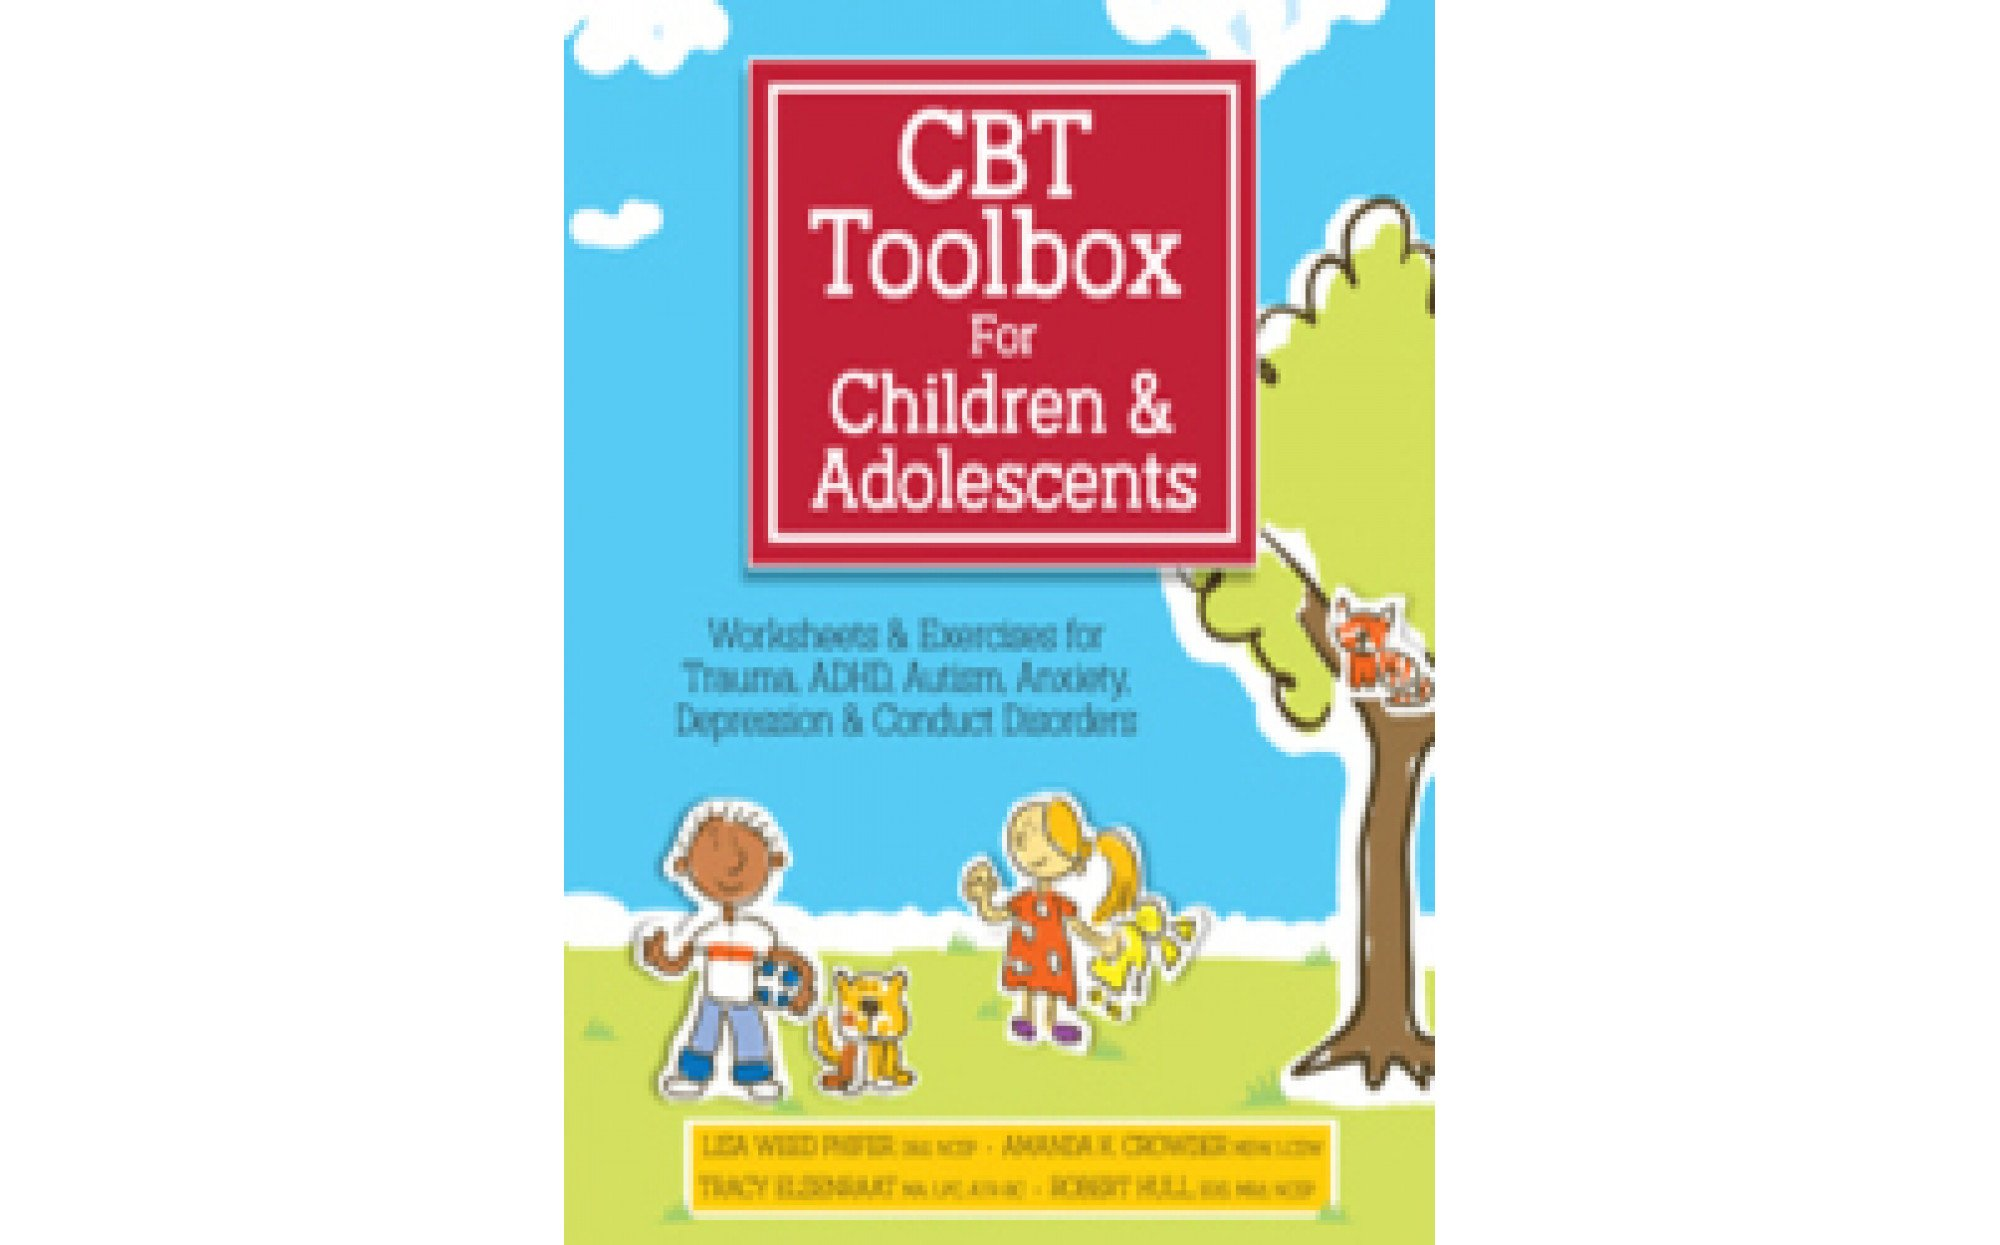 Cbt Toolbox For Children And Adolescents Over 220